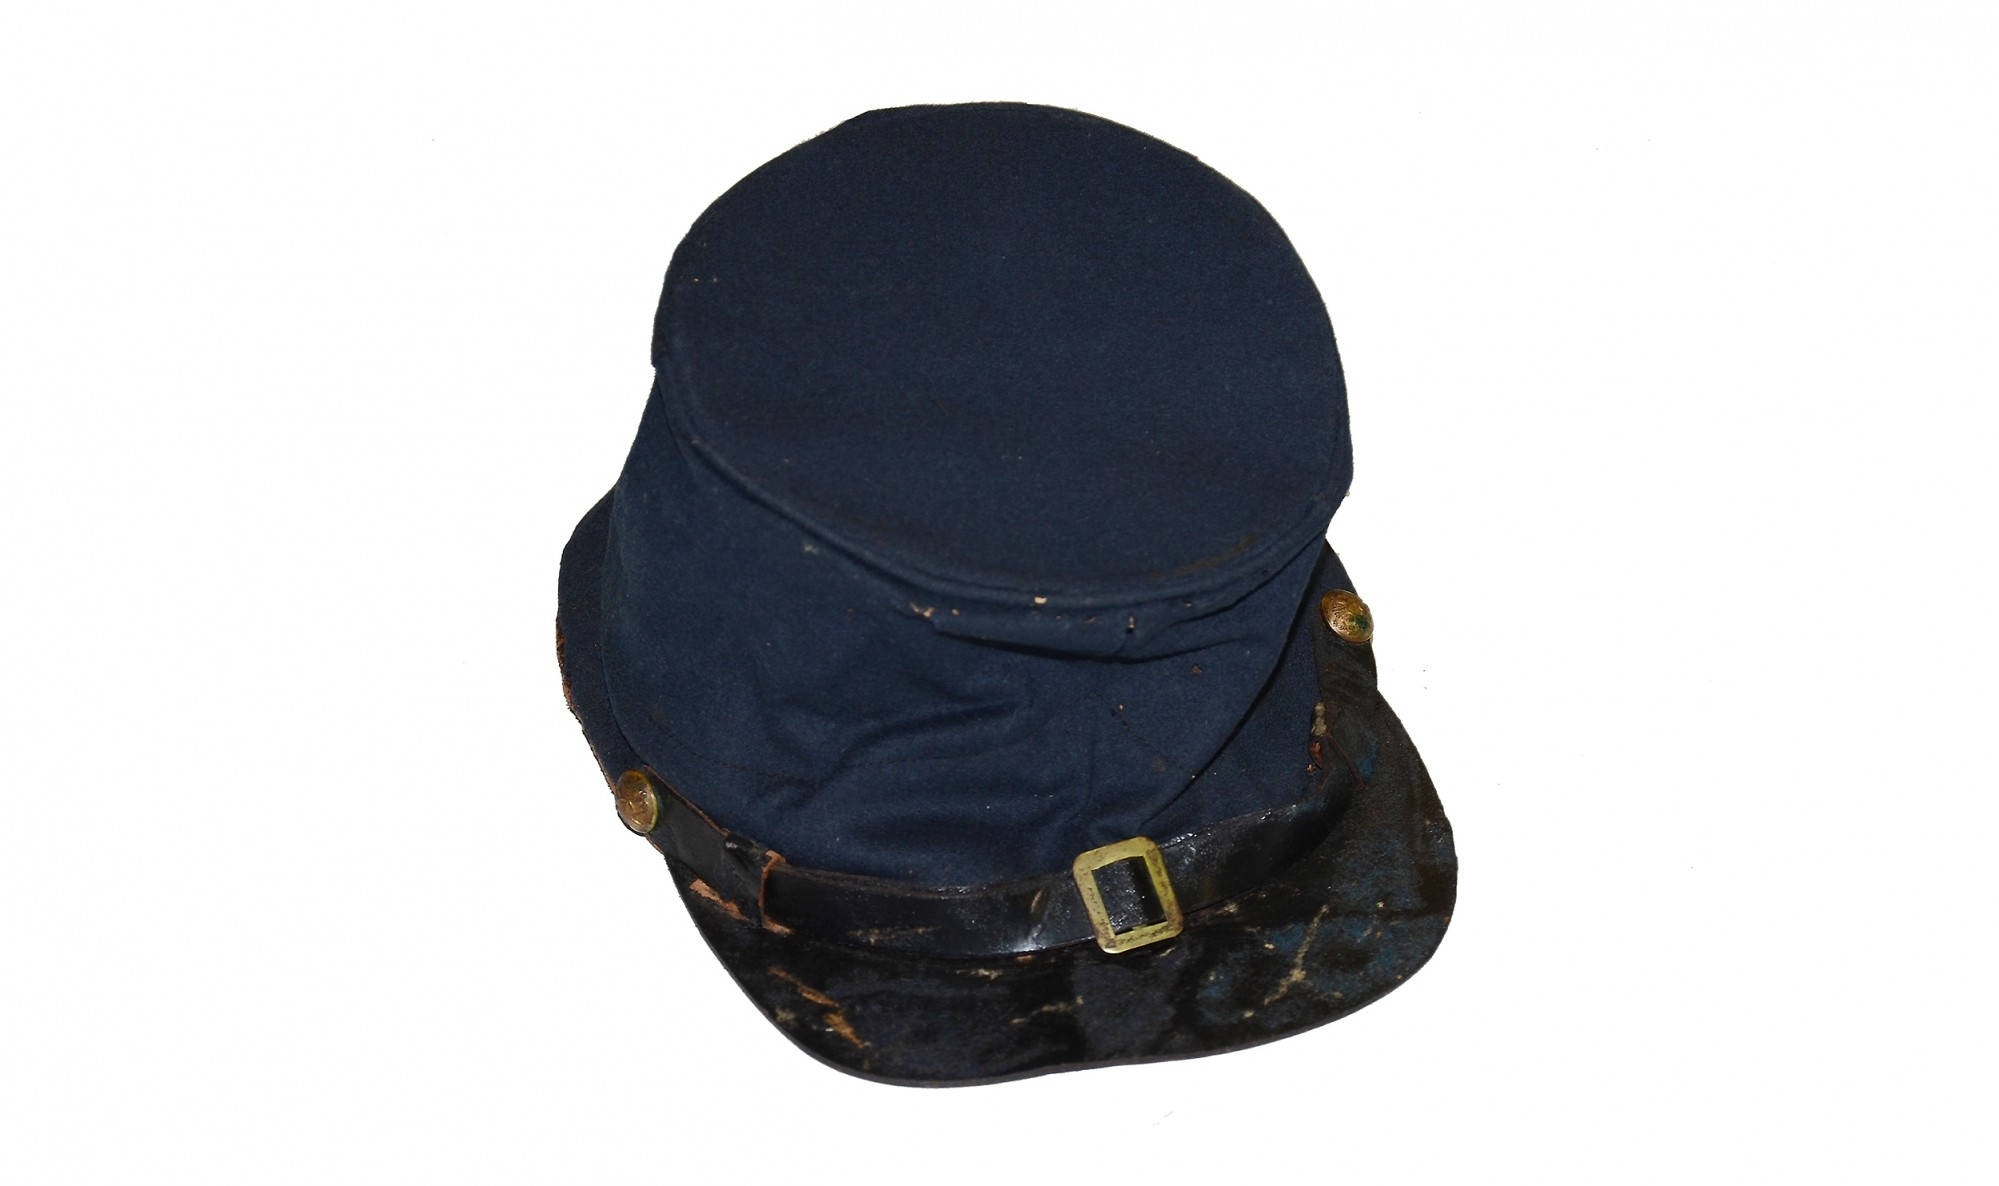 ORIGINAL, MAKER-MARKED M1858 FEDERAL FORAGE CAP VERBALLY ID'D TO THE 22ND MASSACHUSETTS VOLUNTEER INFANTRY